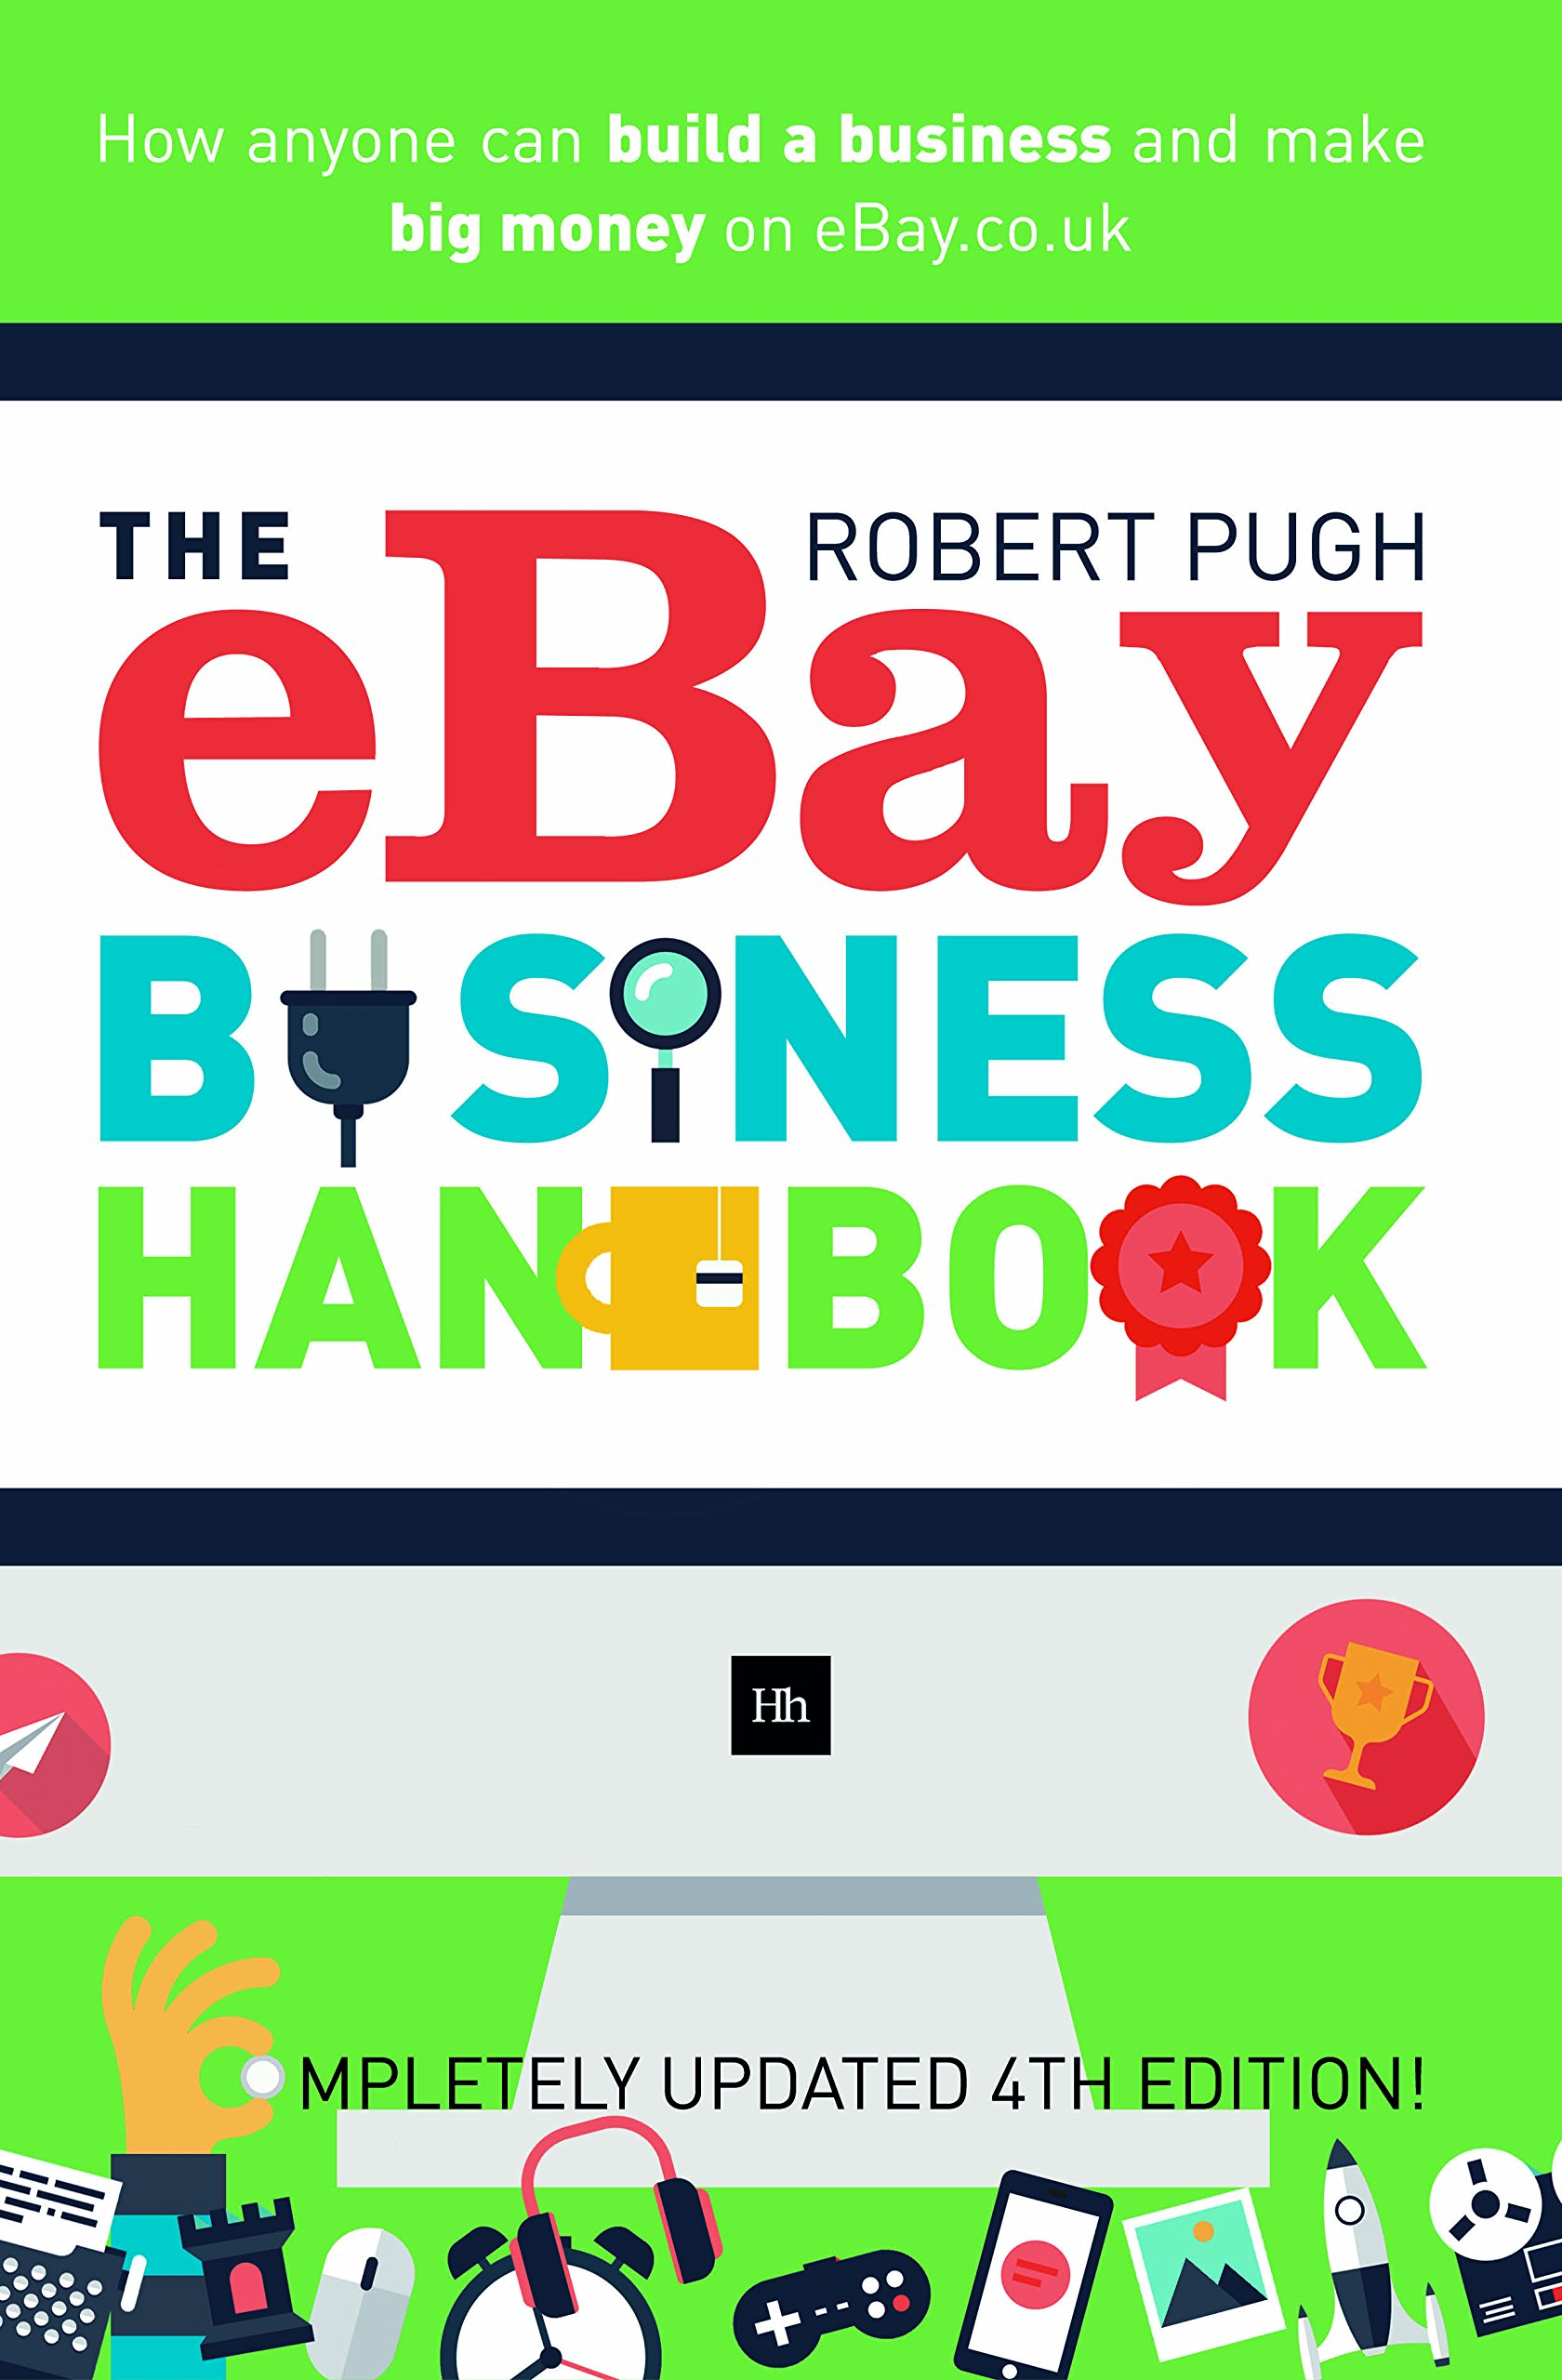 Download The eBay Business Handbook: How anyone can build a business and make big money on eBay.co.uk pdf epub